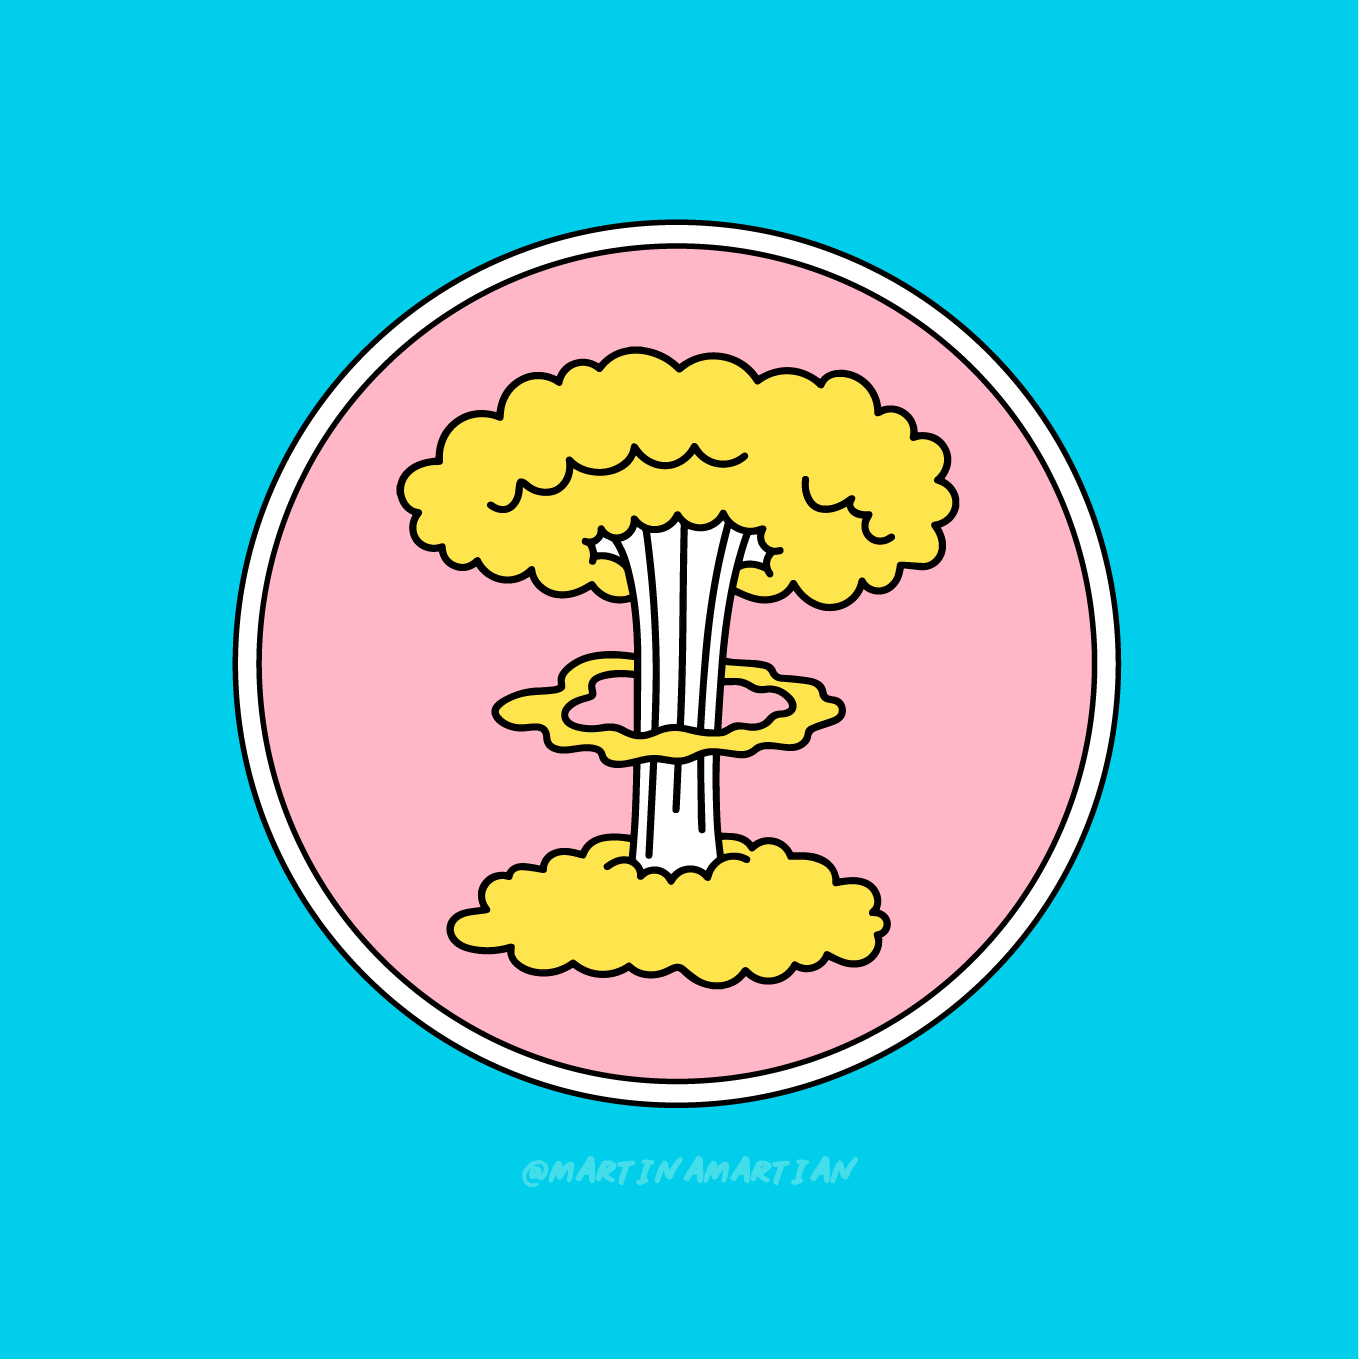 "Martina Martian   @martinamartian   Mushroom Cloud,  2018 Illustration  It wasn't so long ago that Martina Martian visited Hiroshima and finally understood the reality of how devastating nuclear weapons are.   Martian joined thousands of others in signing a pledge against nuclear warfare but says that their voices have not been heard. ""Weapons 20 times more powerful than that which devastated Hiroshima and Nagasaki already exist.""  In a series of images, which appear fun and bold, Martian speaks to a dark underlying reality, ""that the threat of nuclear warfare is alive and real."""